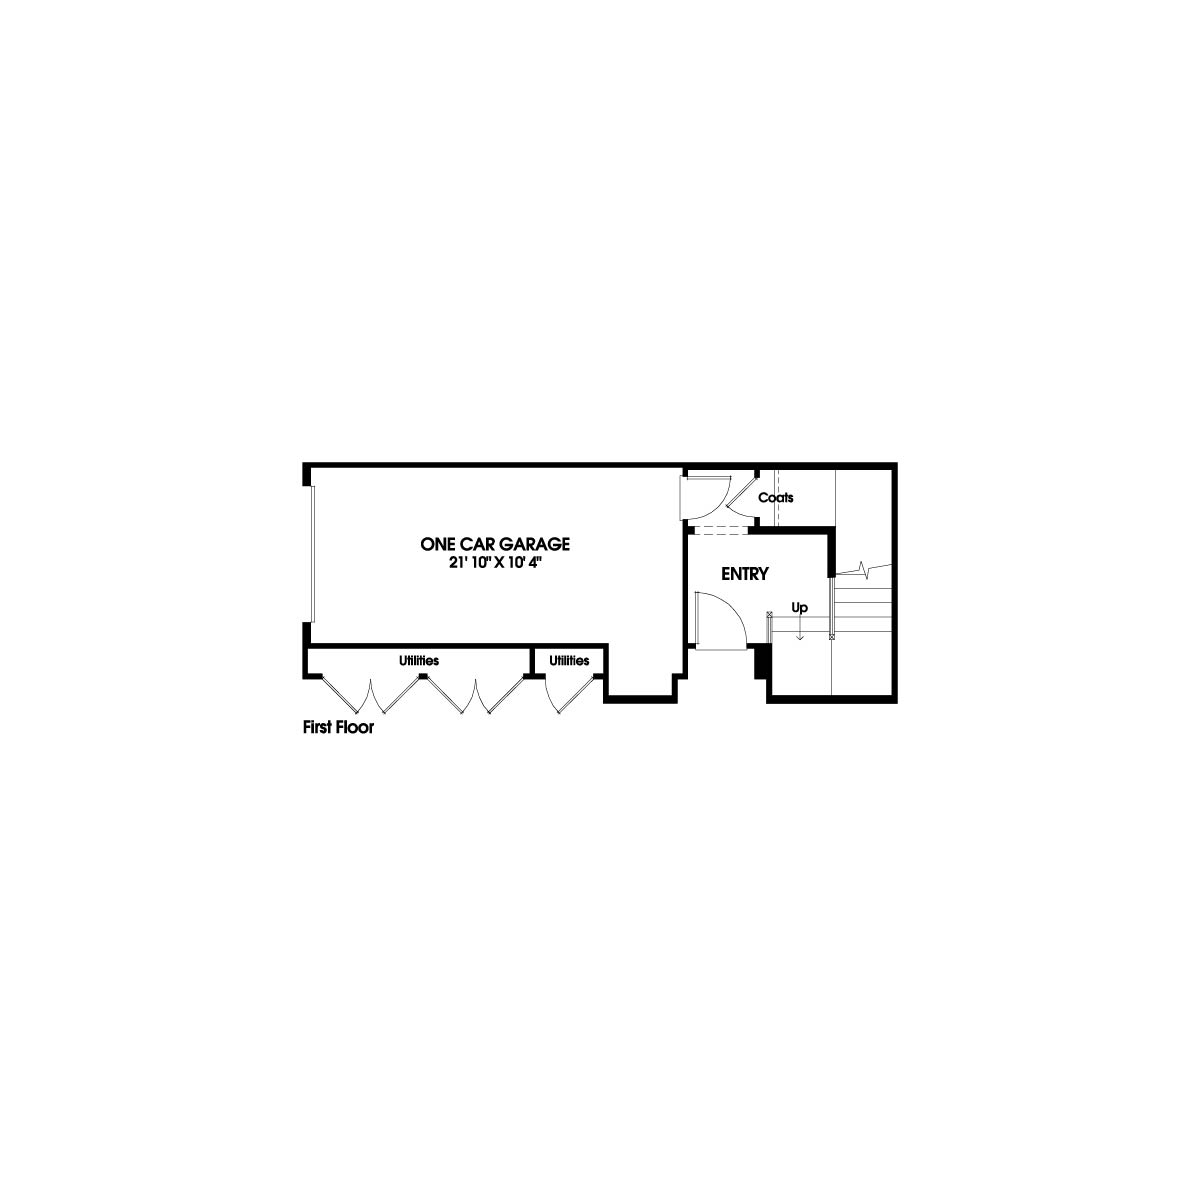 First floor residence 1 floor plan | Holiday at New Haven in Ontario Ranch, CA | Brookfield Residential